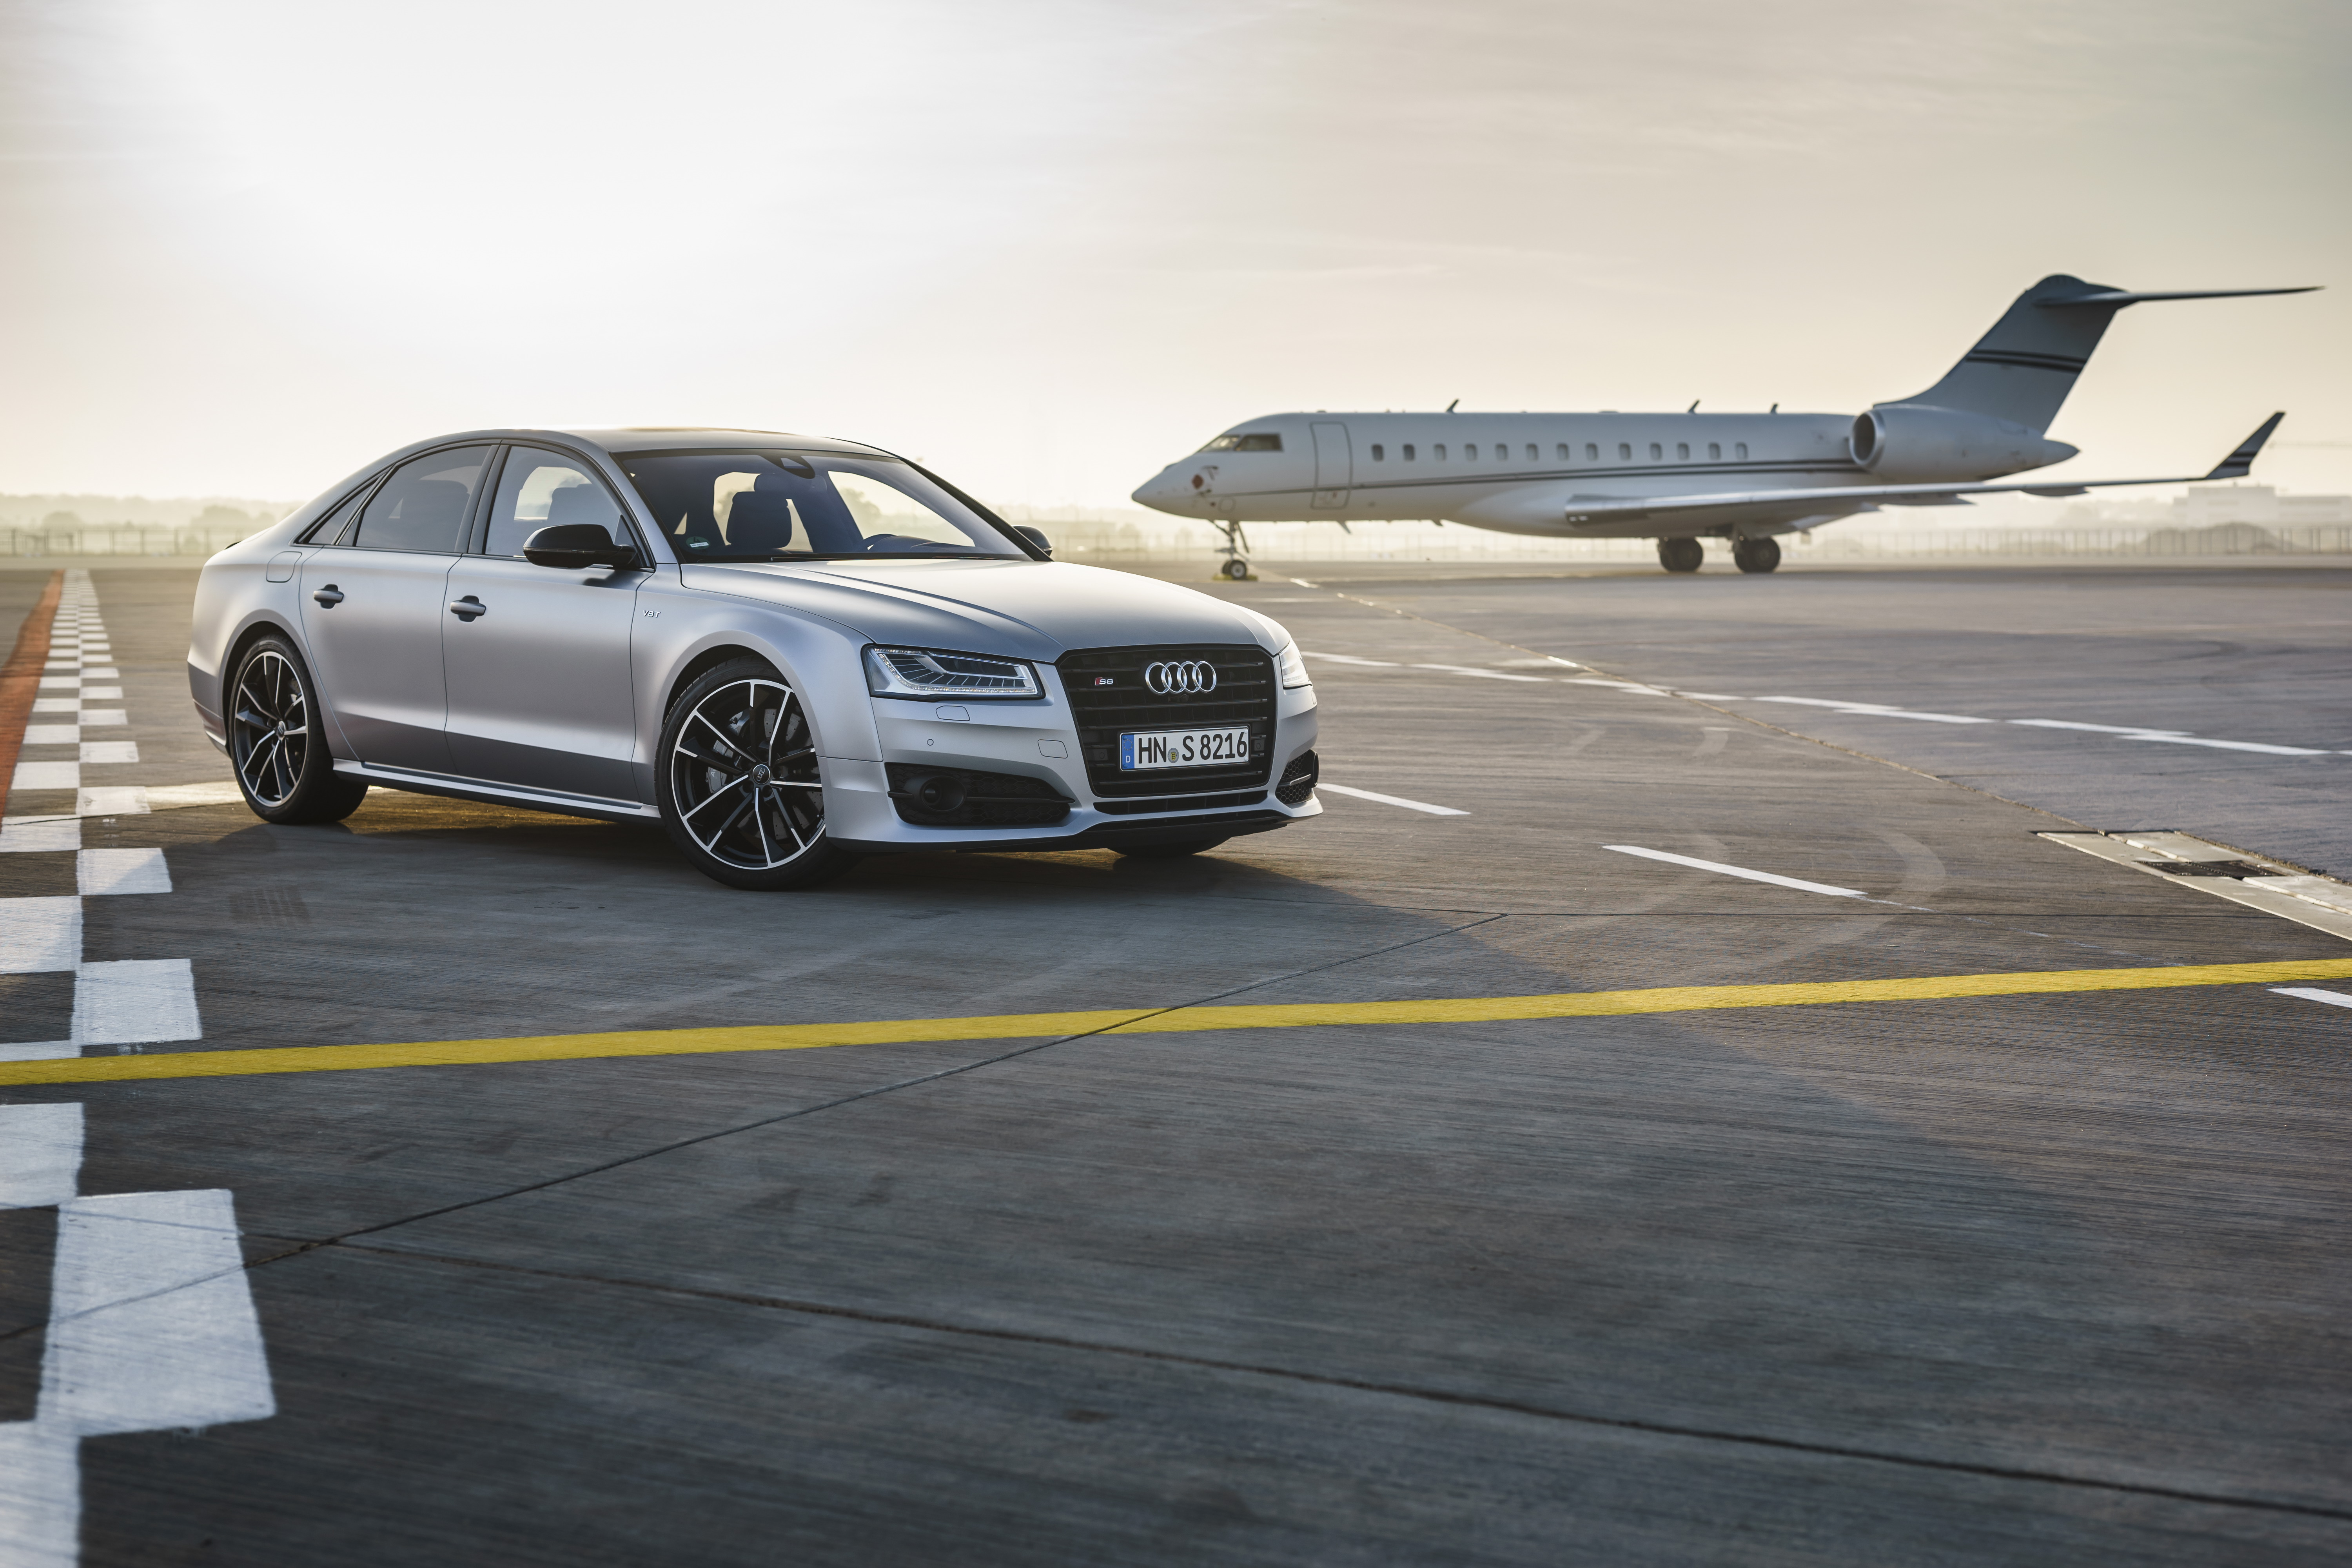 The Audi S8 plus at Frankfurt Airport 5k Retina Ultra HD 6000x4000